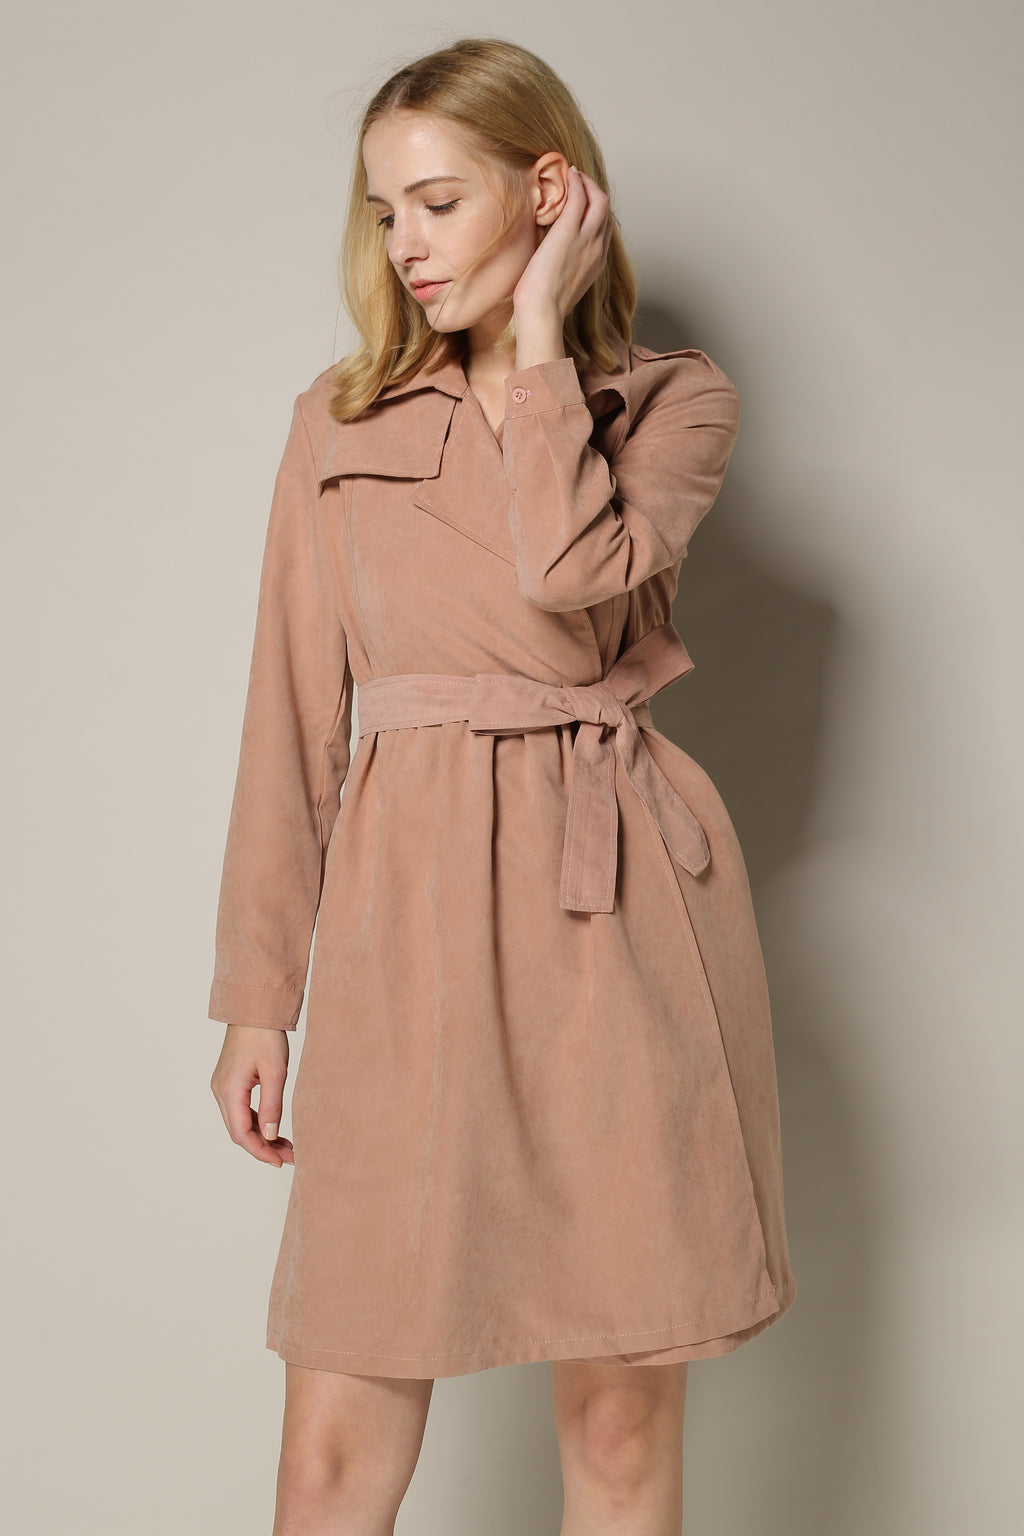 Rosy Brown Trench Dress